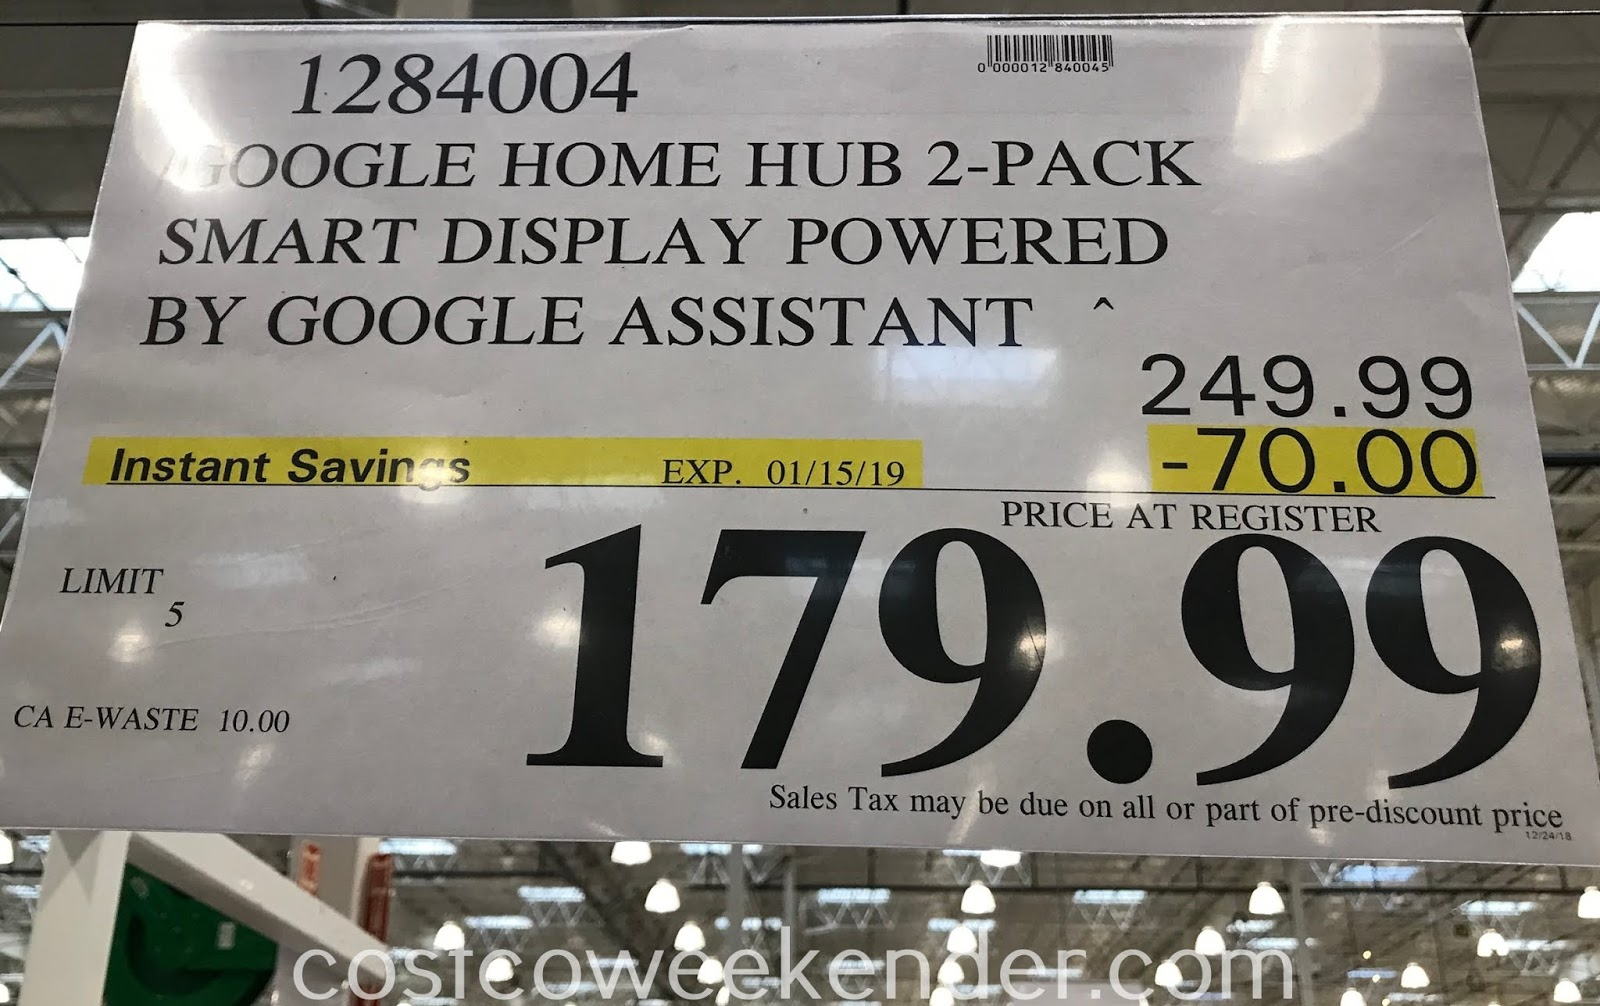 Deal for a 2 pack of Google Home Hubs at Costco